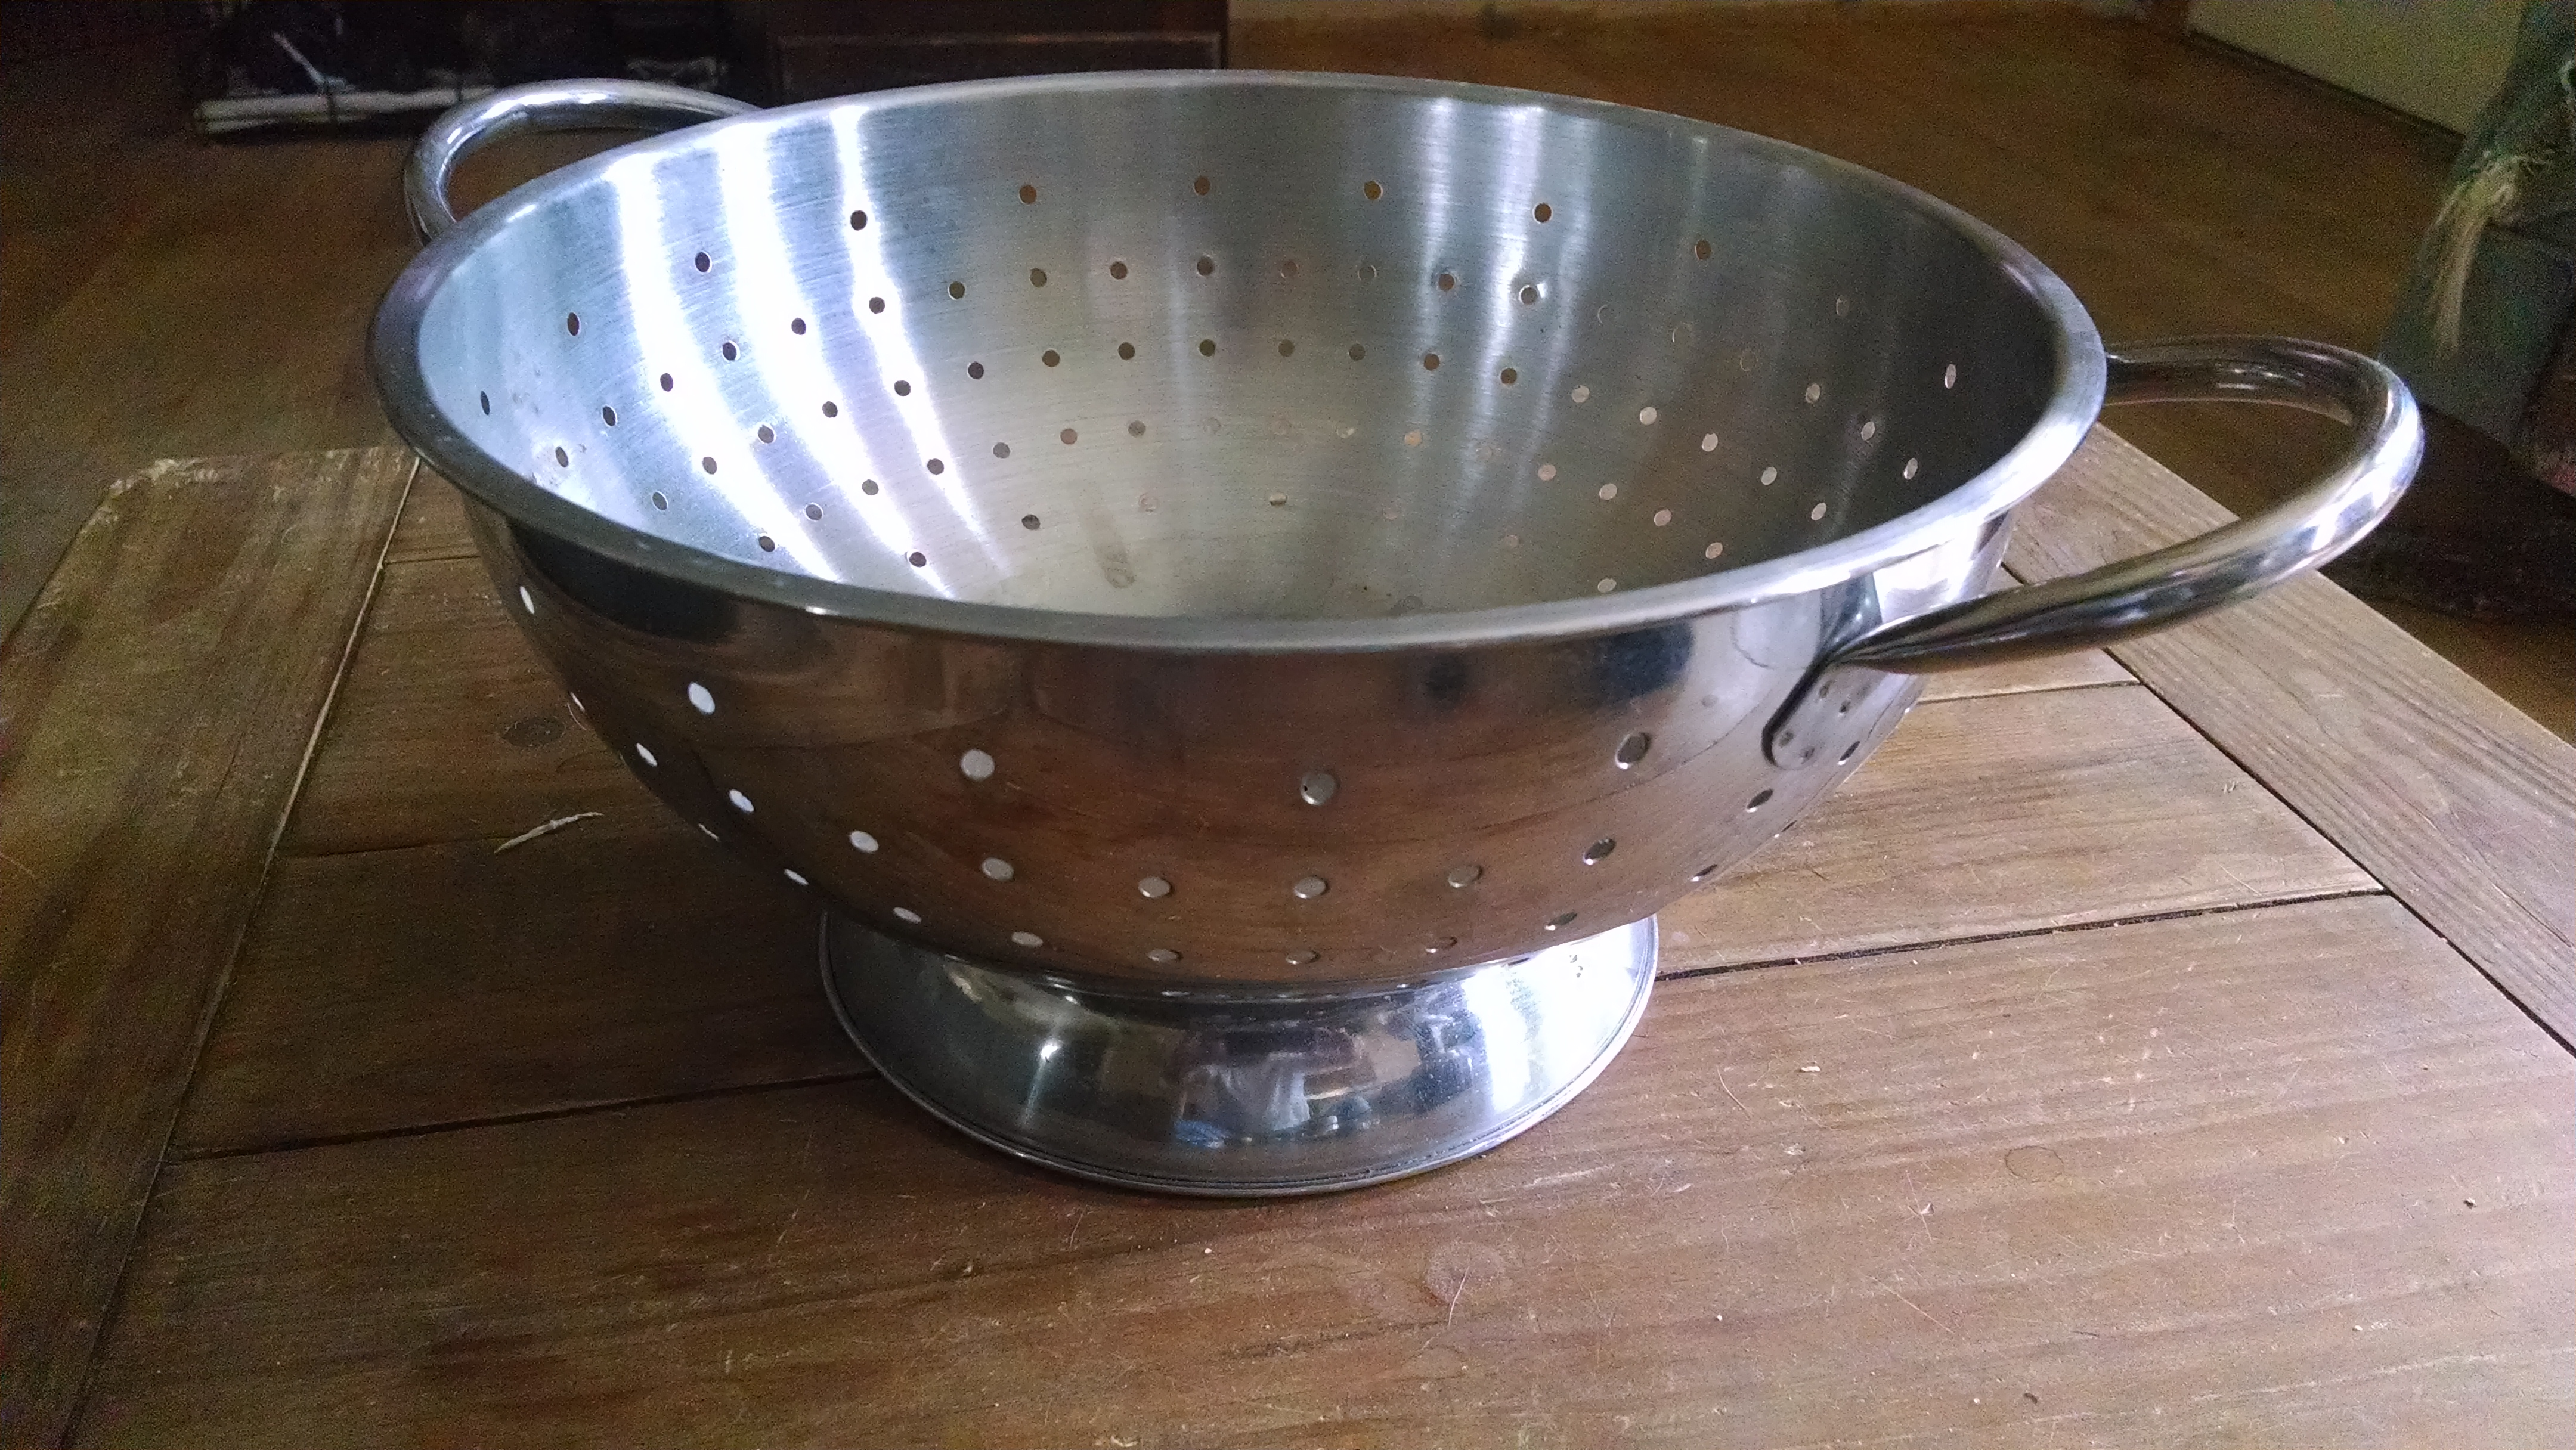 Picture of Prepping the Colander